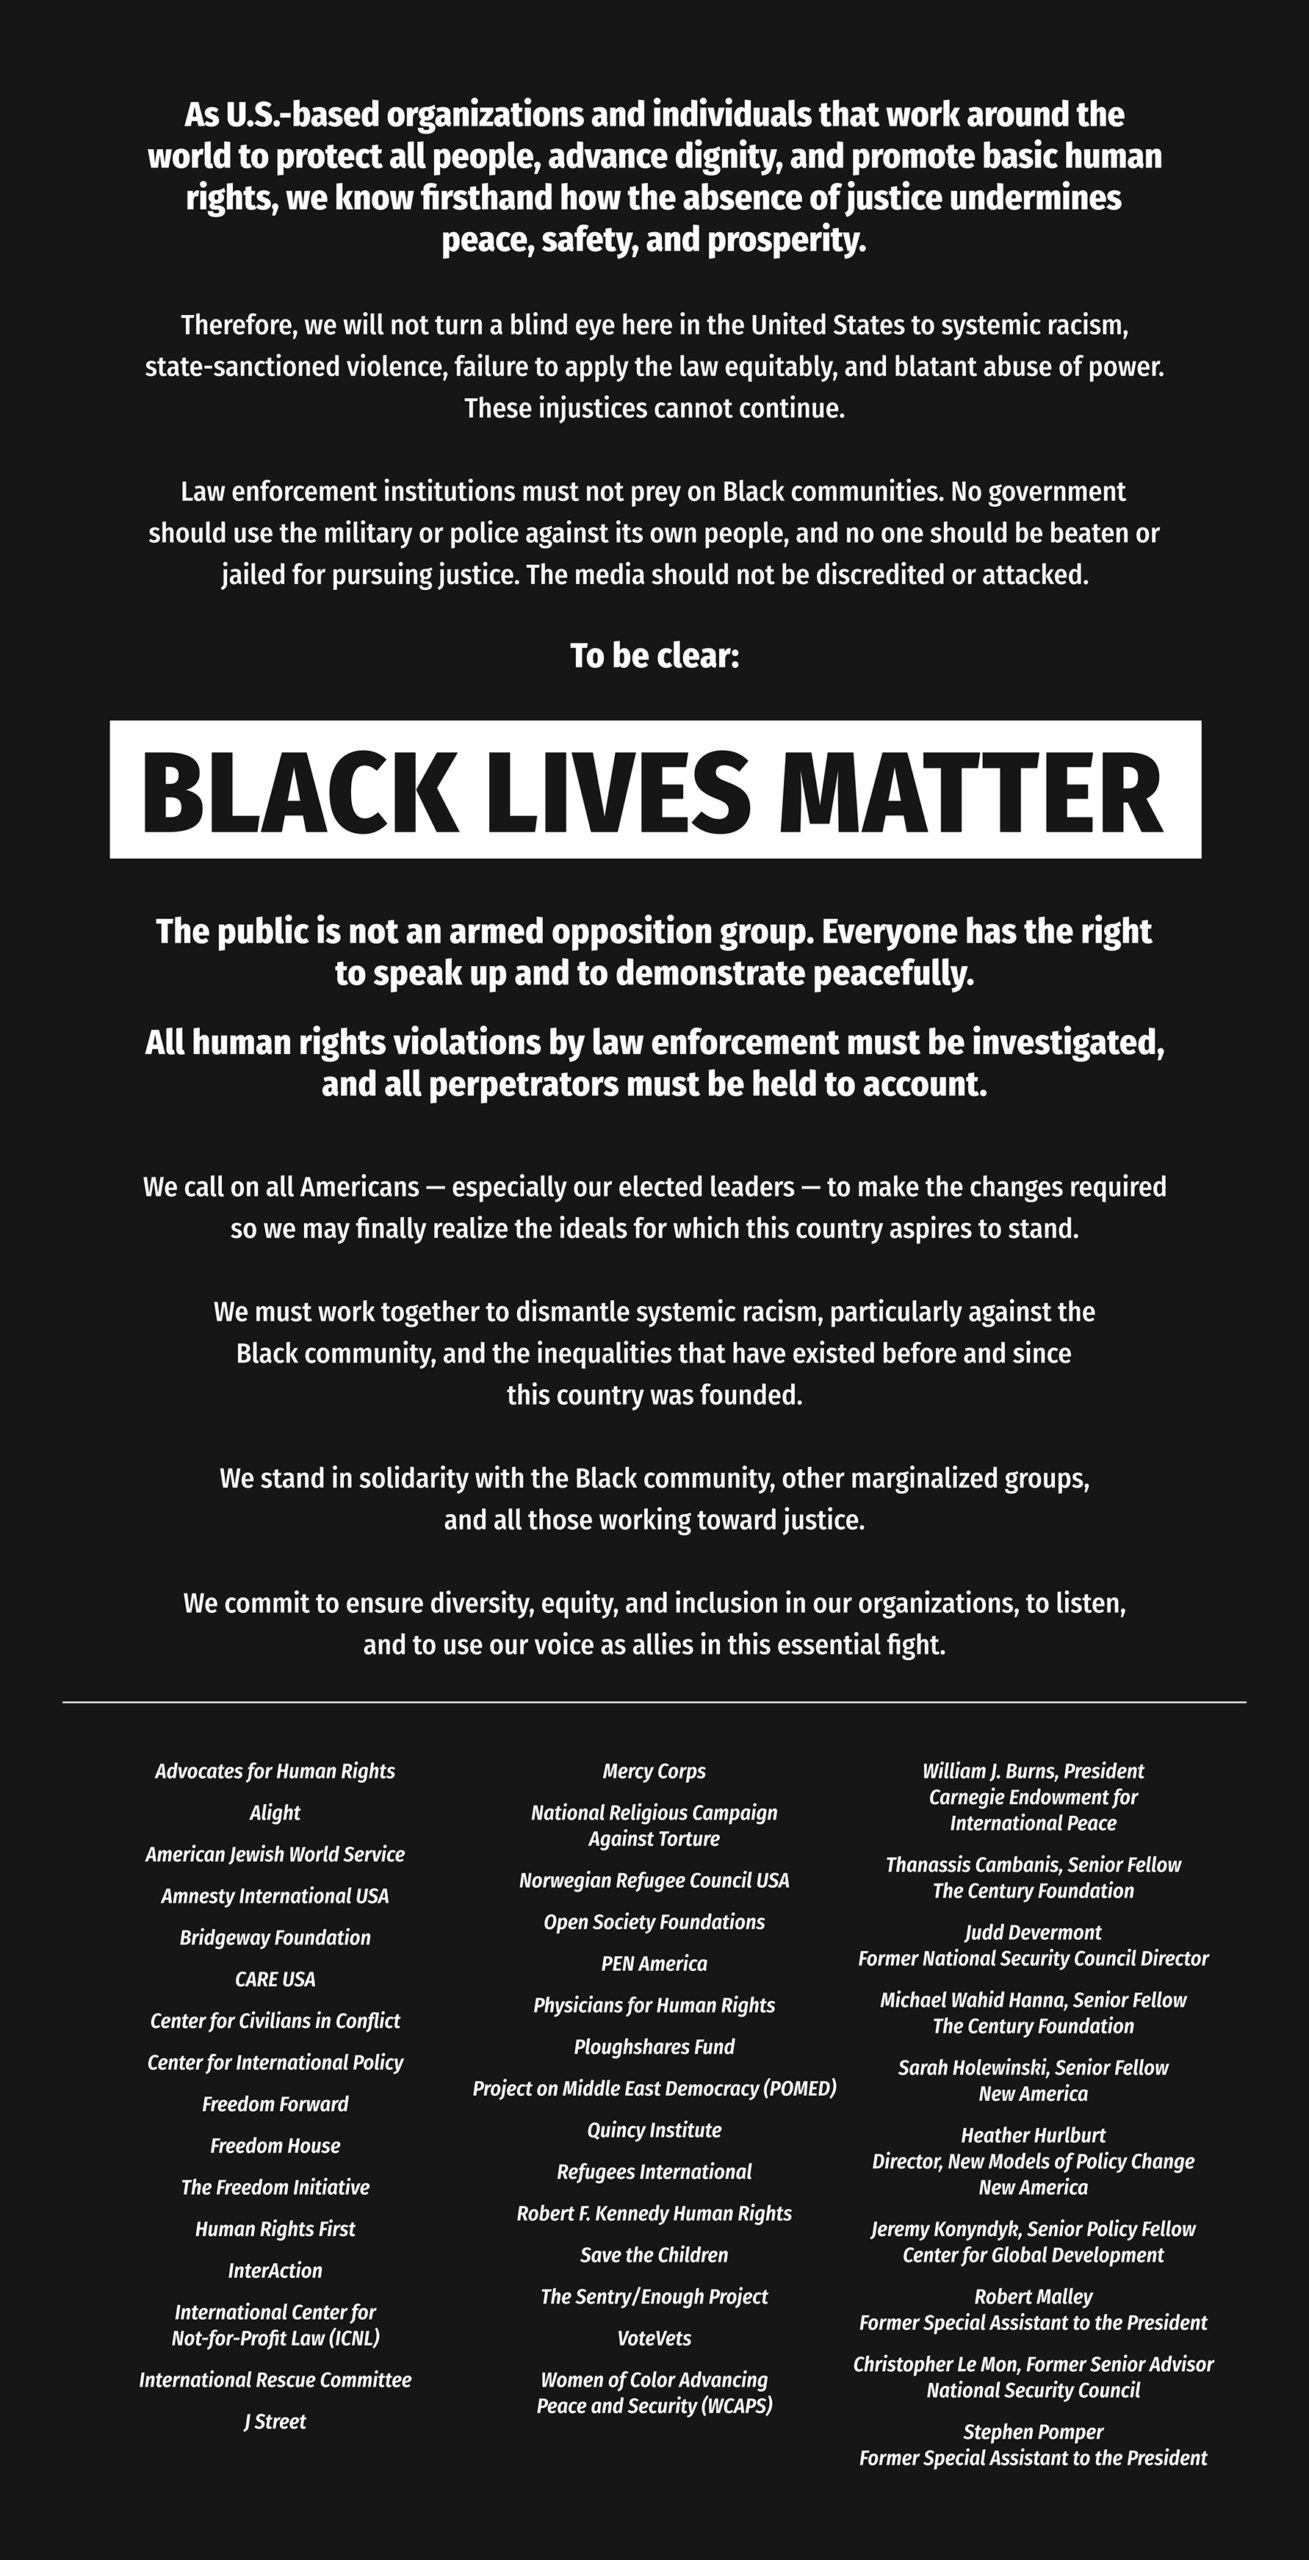 CARE and other organizations published a statement supporting Black Lives Matter in the June 15 issue of the Minneapolis Star Tribune.